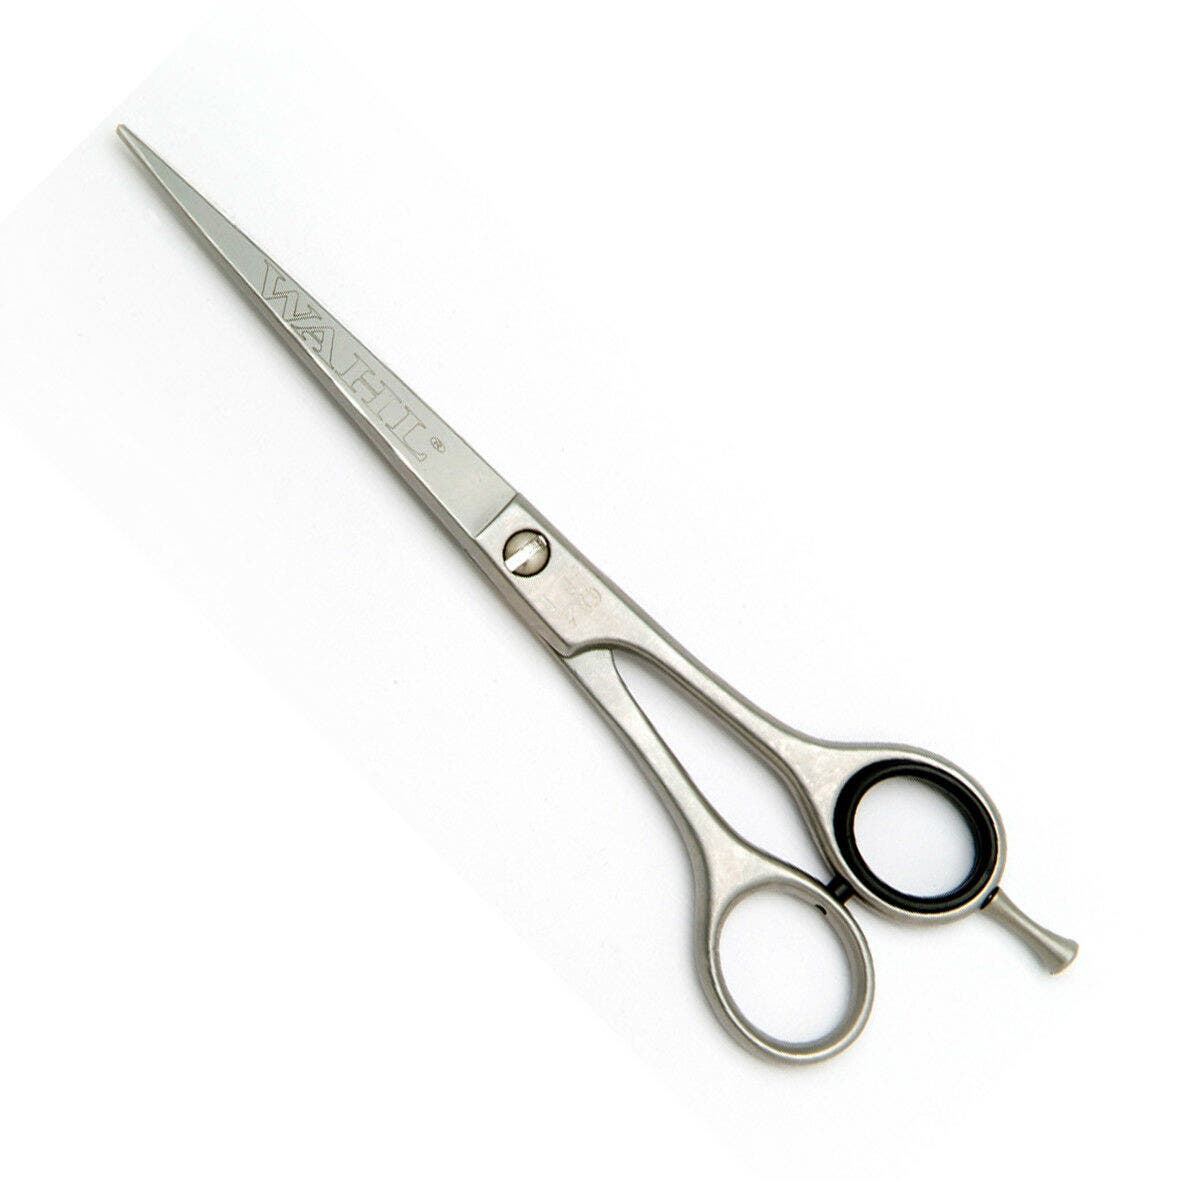 "Wahl Professional Scissors 7.0"" Italian Series WSIT70"